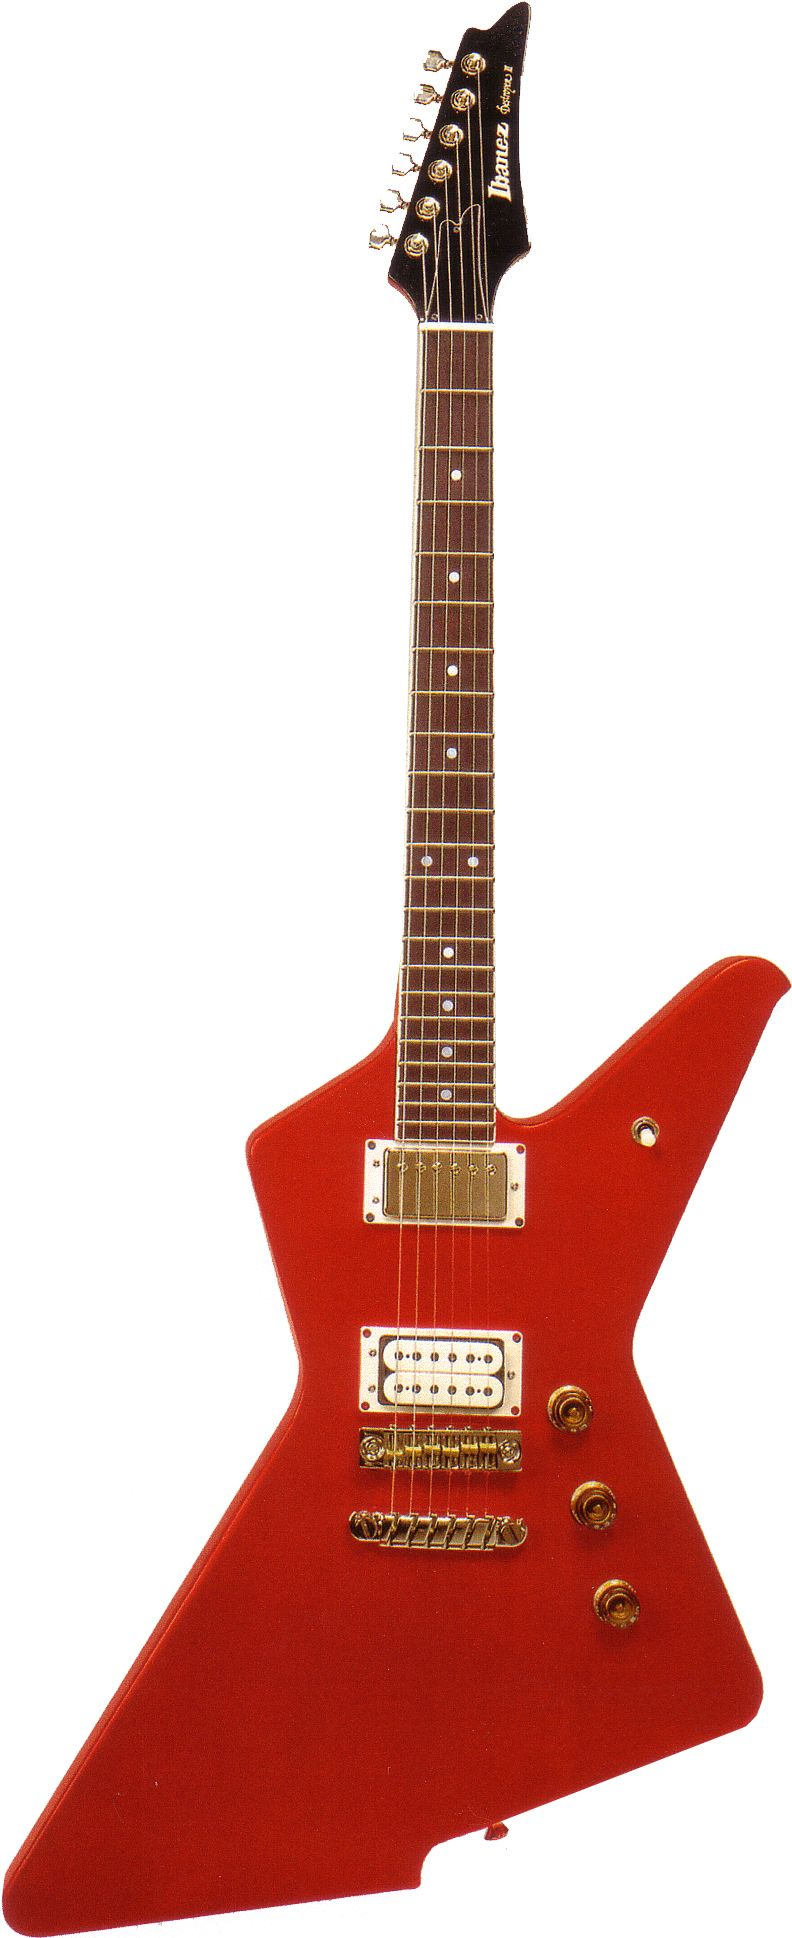 Destroyer Cool electric guitars, Guitar collection, Cool